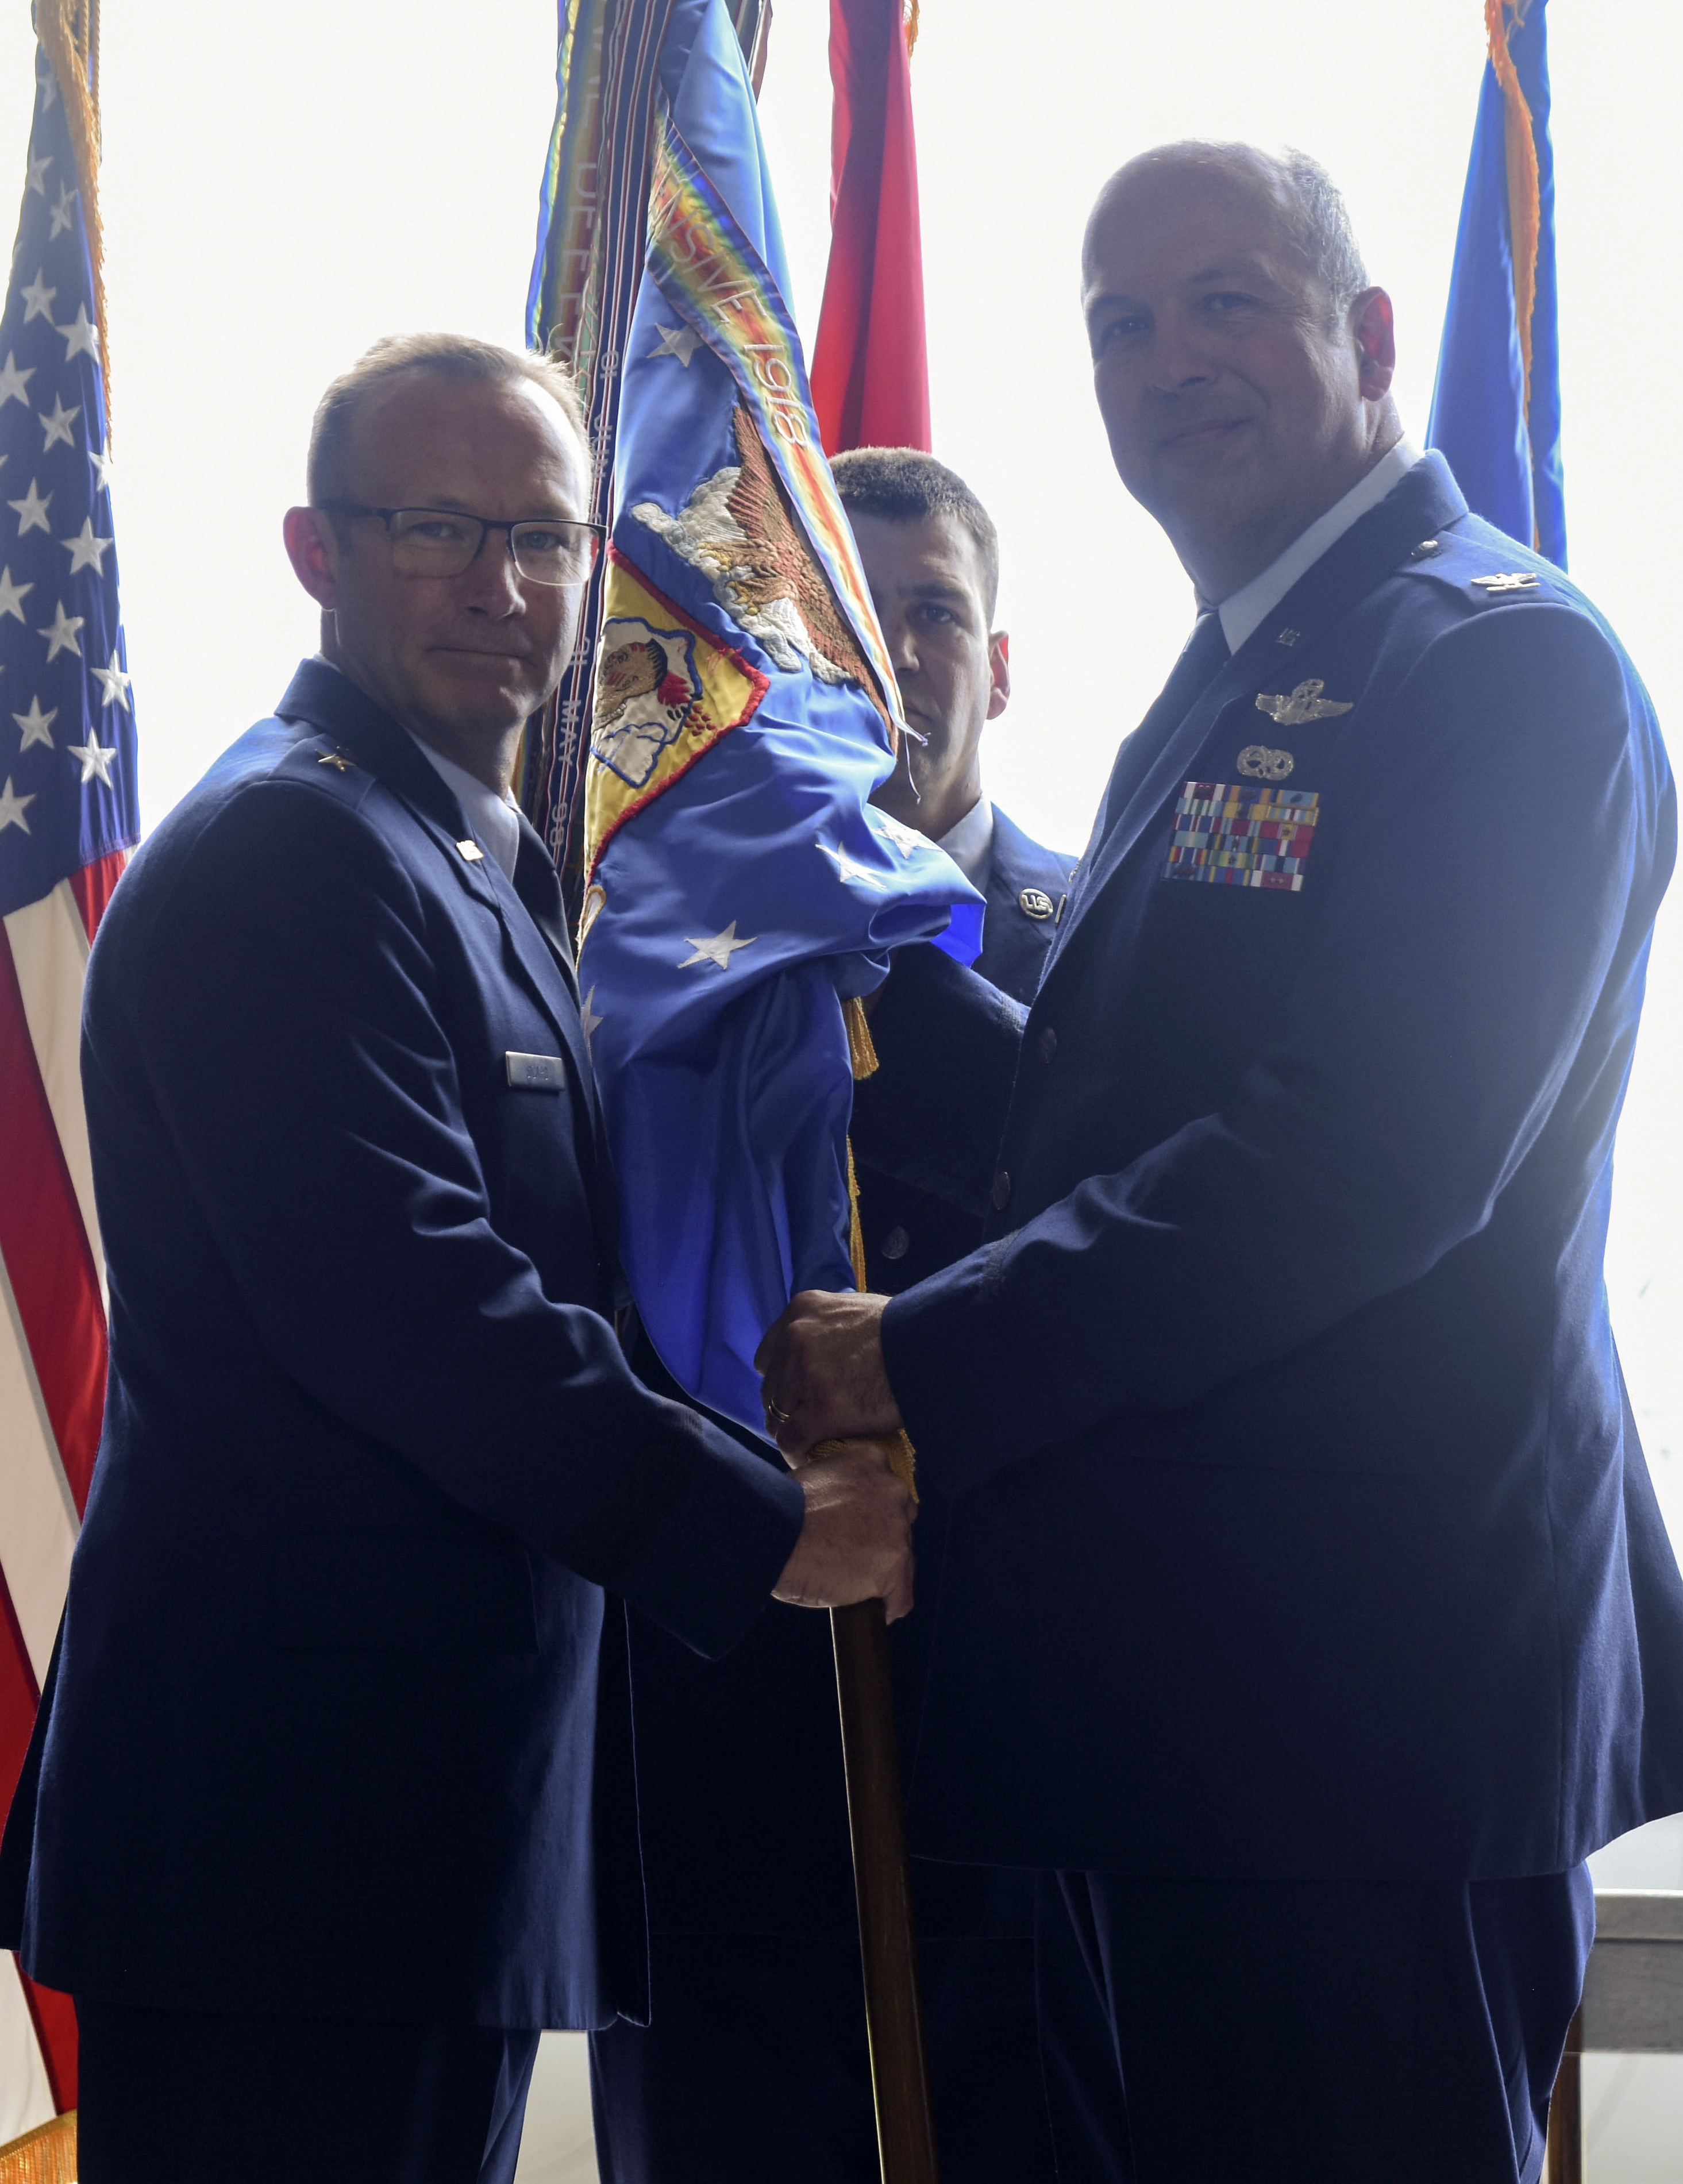 189th Airlift Wing Change of Command